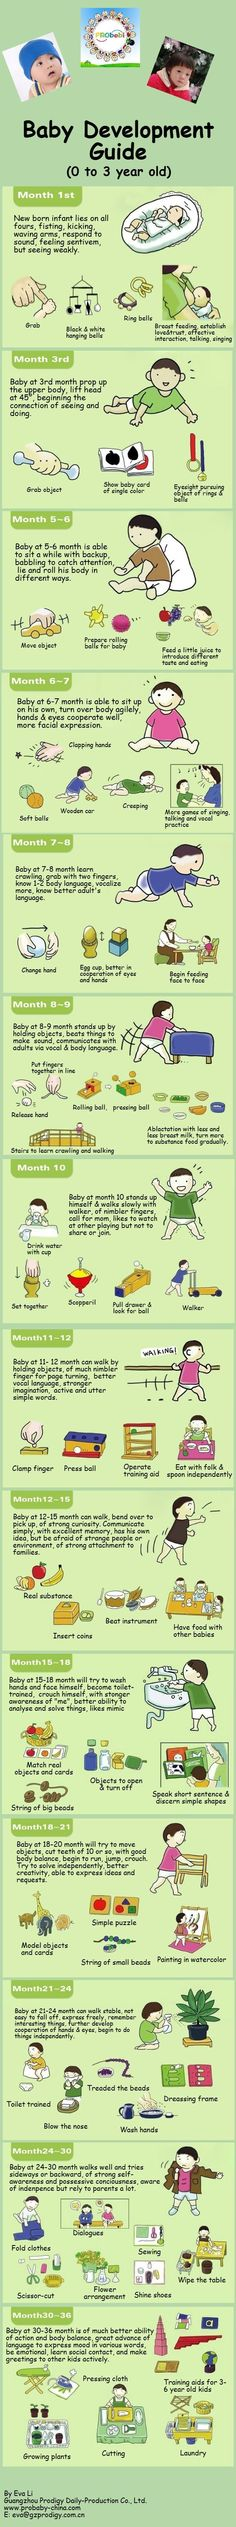 Baby Development Guide Repinned by CAPA www.capacares.org